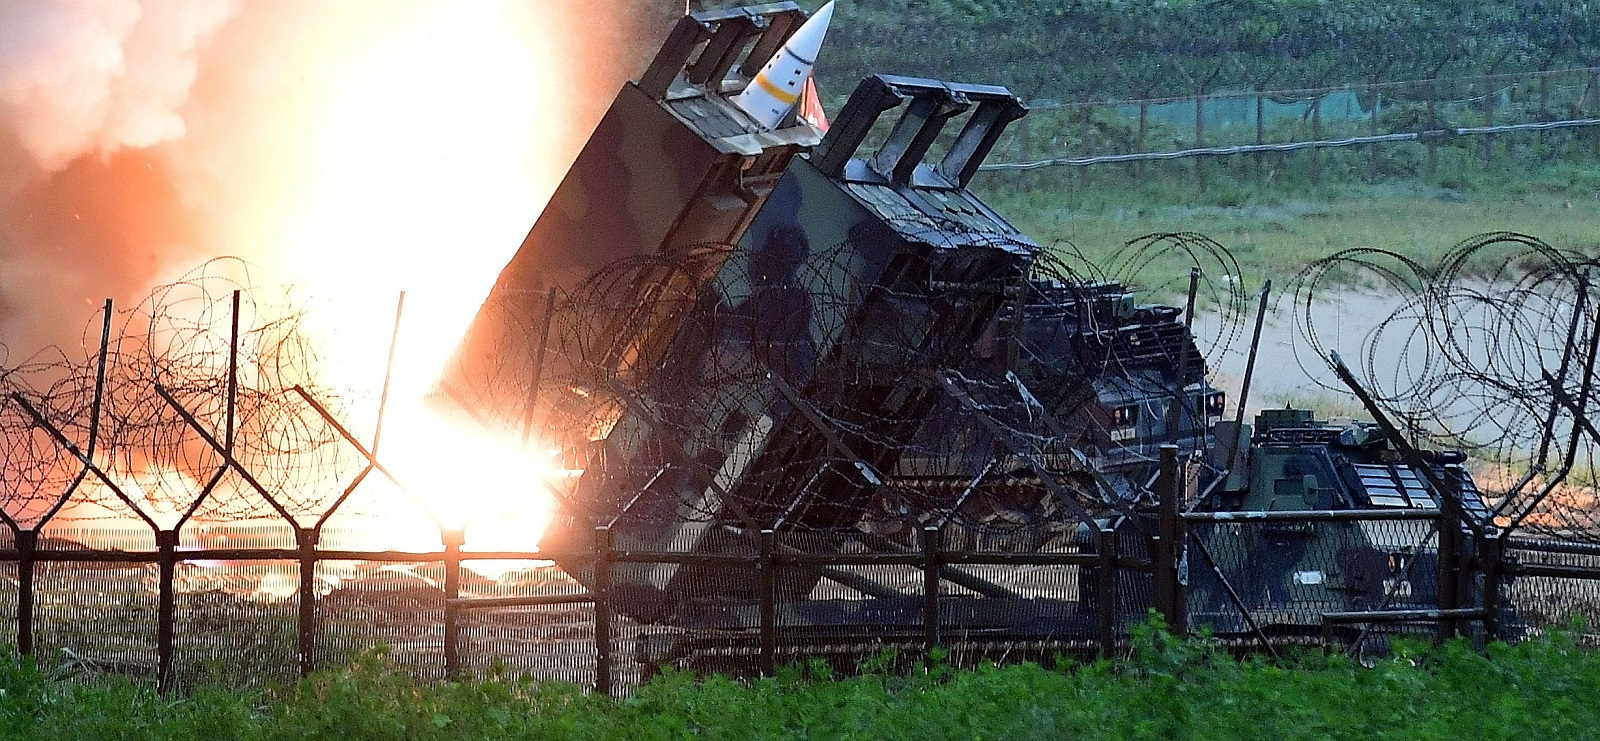 A South Korea-US joint missile drill in response to North Korea's launch on Friday (Photo: Getty Images)